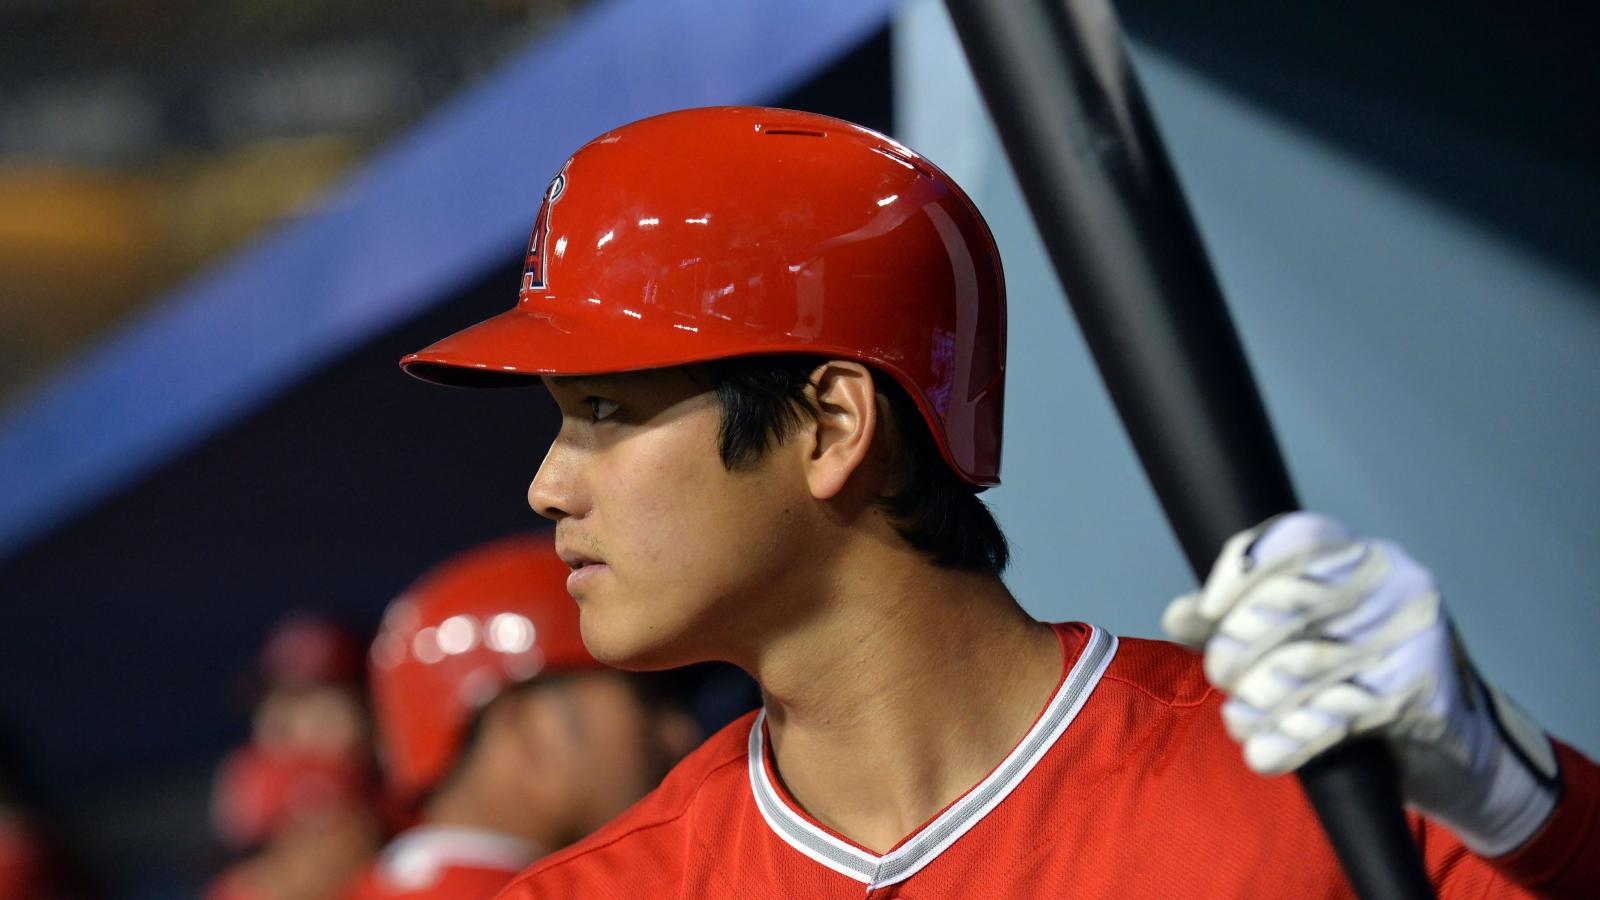 MLB Opening Day 2018: Shohei Ohtani's debut puts the MLB